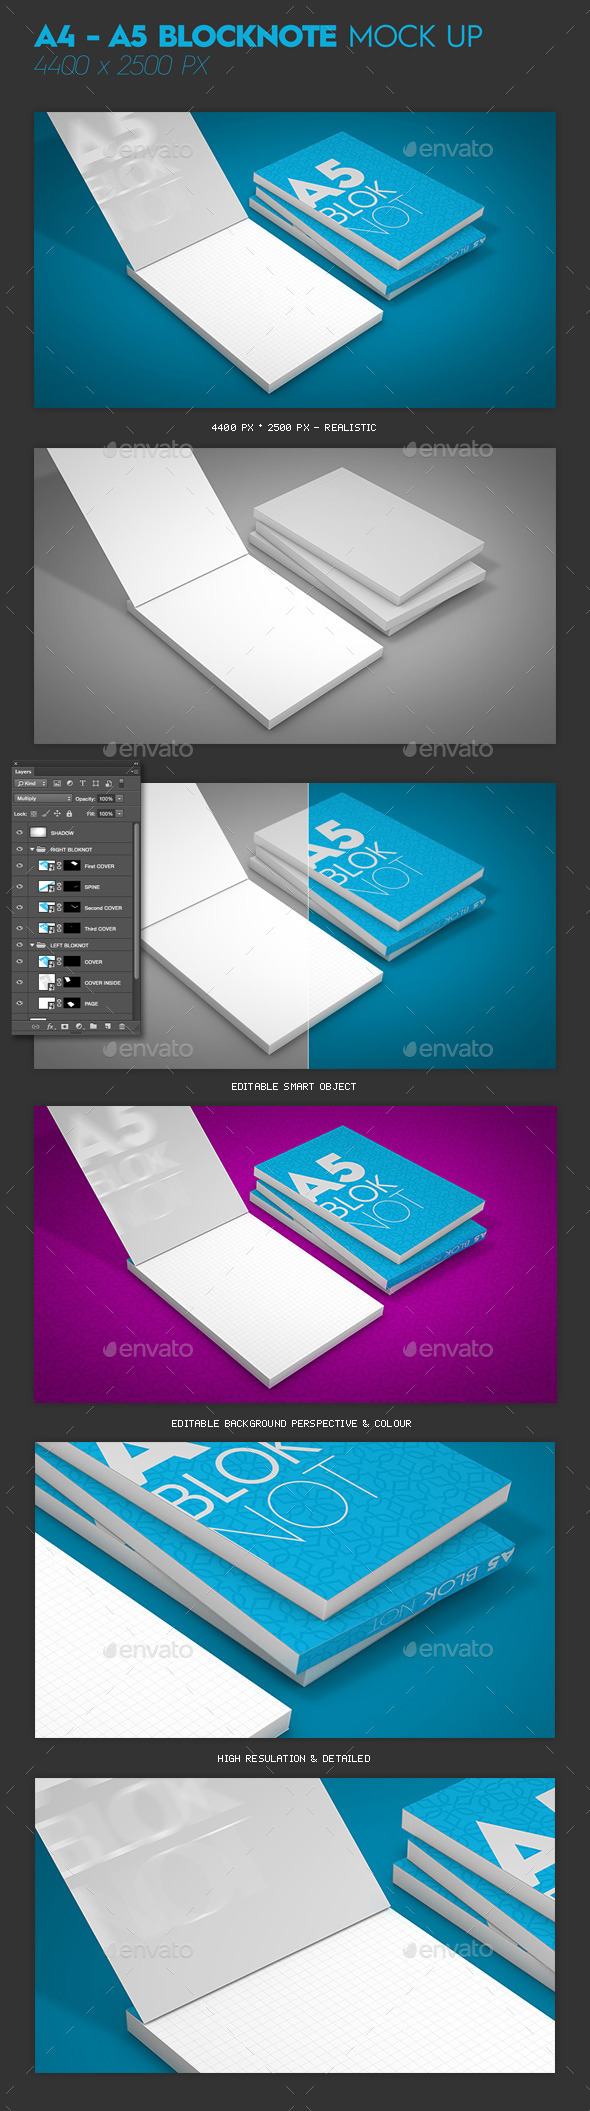 GraphicRiver A4 A5 Blocknote Mock-Up 11317097